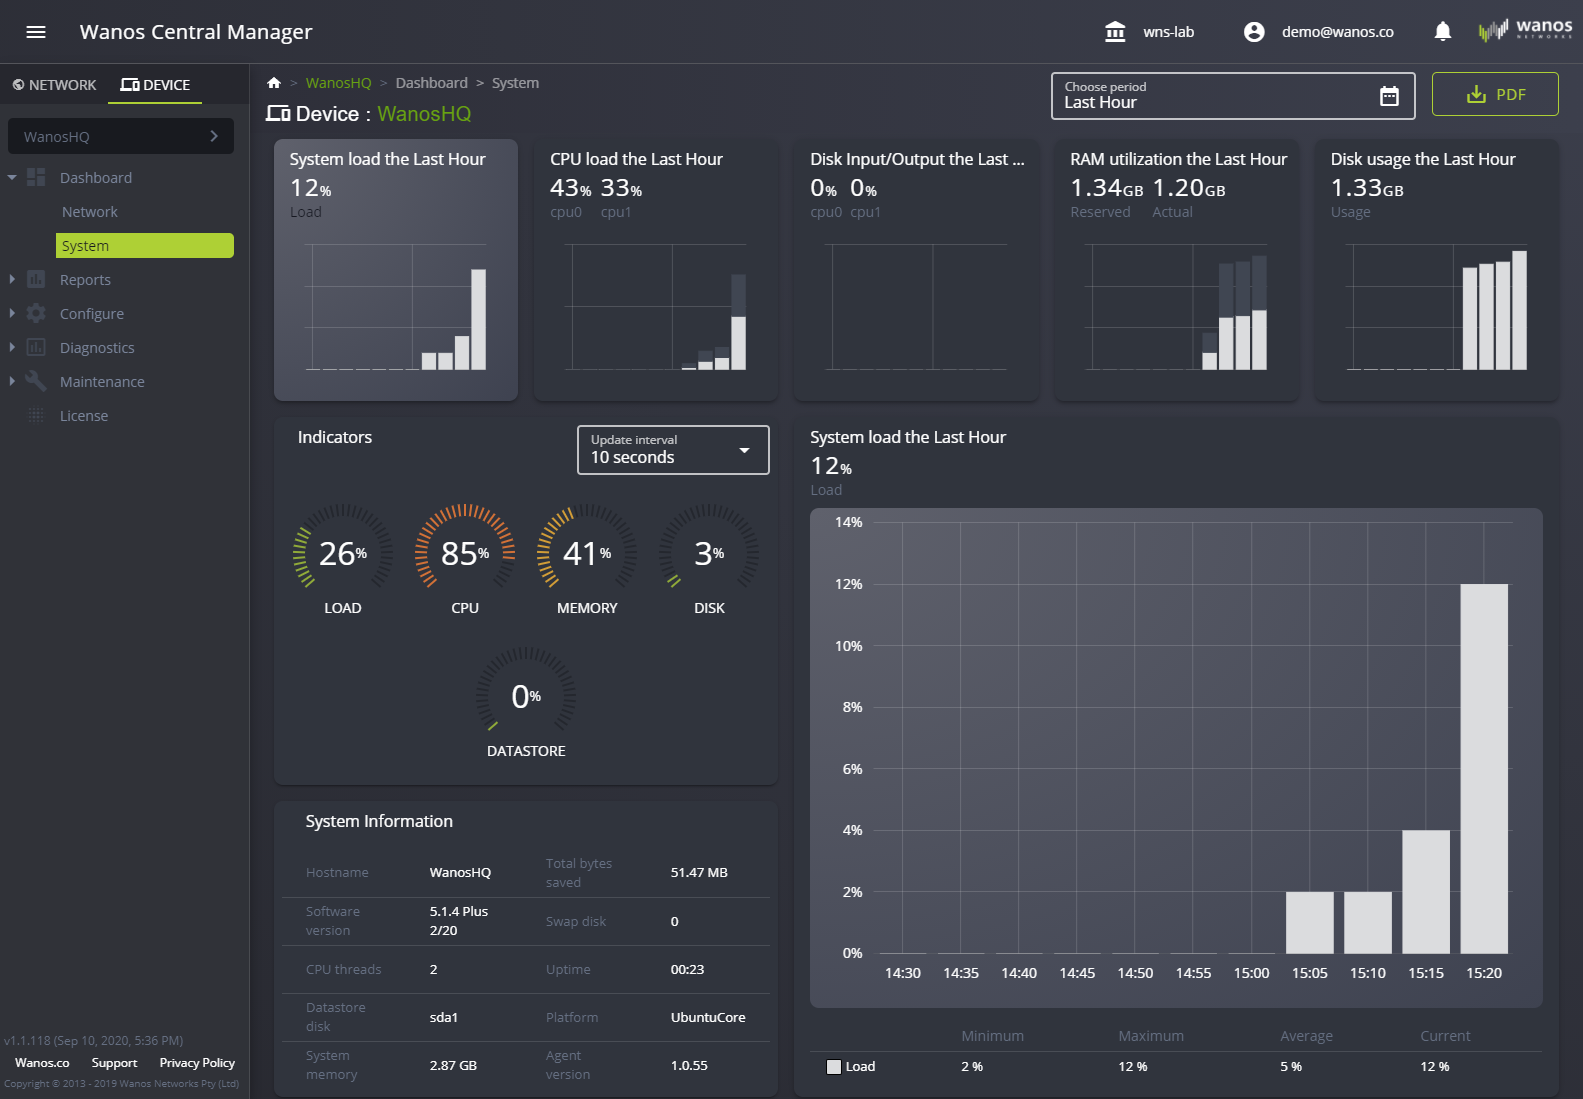 device-dashboard-system